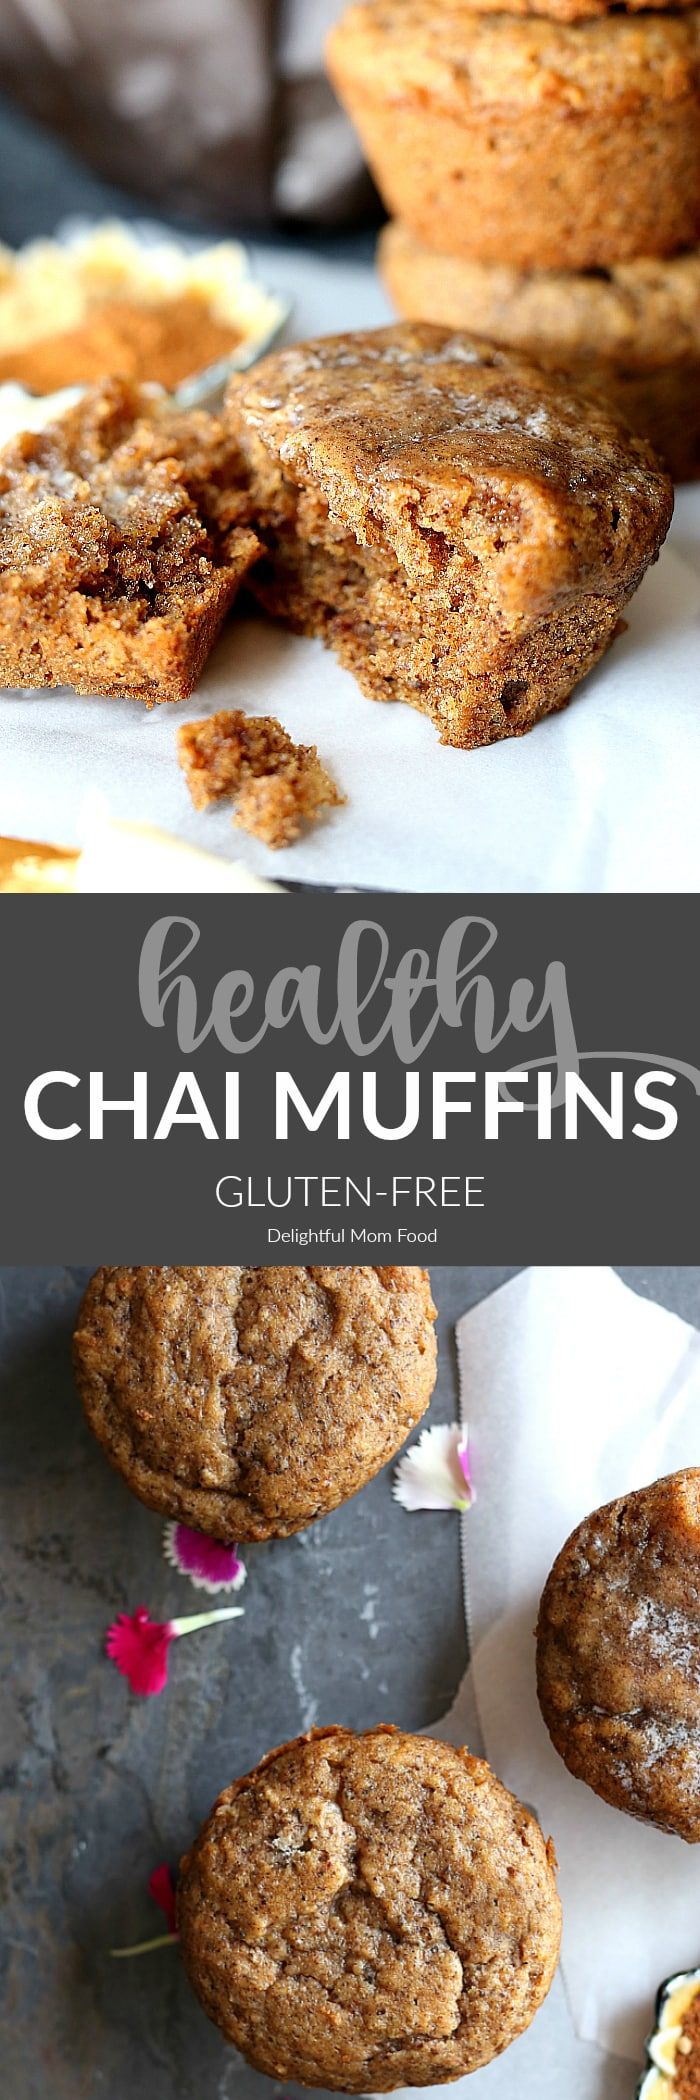 Soft and delicious chai muffins made with gluten-free flours and flax meal for the ultimate fluffy healthy spiced muffin recipe! #recipe #healthy #glutenfree #dairyfree #muffin #muffins #chai #spice #spiced | Recipe at delightfulmomfood.com